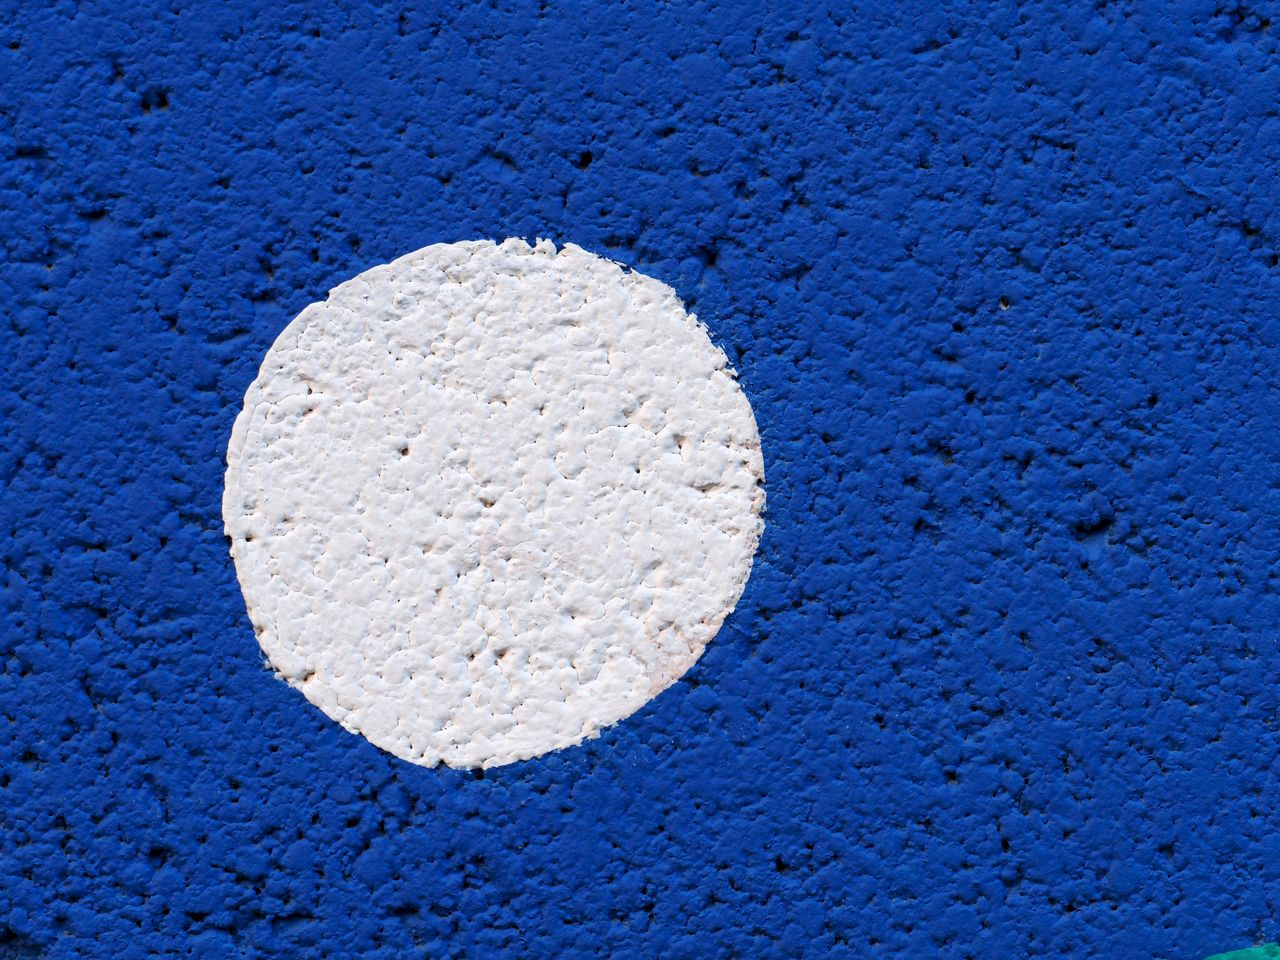 blue, white color, textured, no people, close-up, wall - building feature, architecture, shape, full frame, backgrounds, pattern, built structure, wall, design, copy space, circle, geometric shape, number, outdoors, food and drink, concrete, blue background